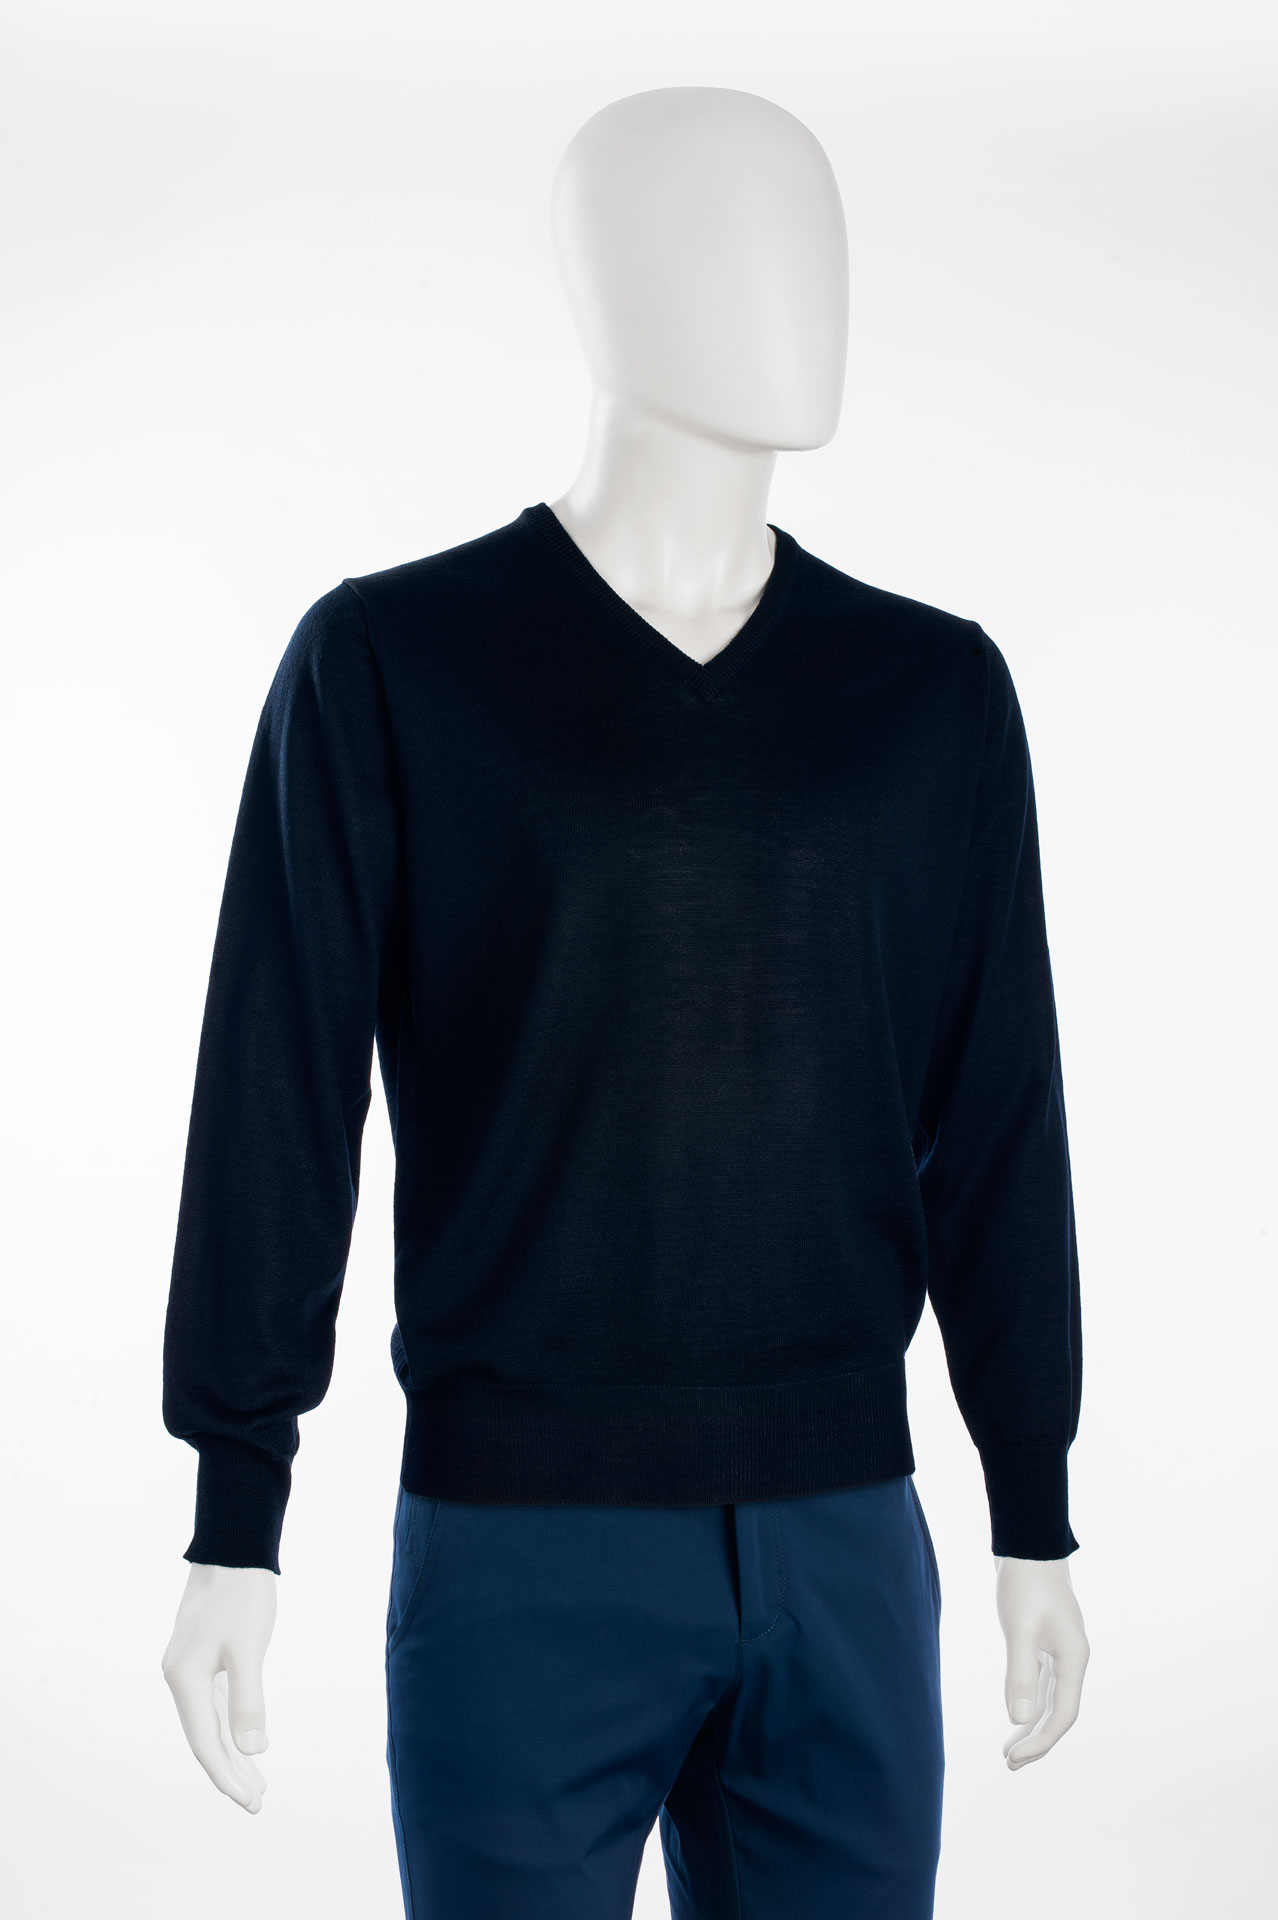 Pullover uomo manica lungaART.1500 colore 1214 navy